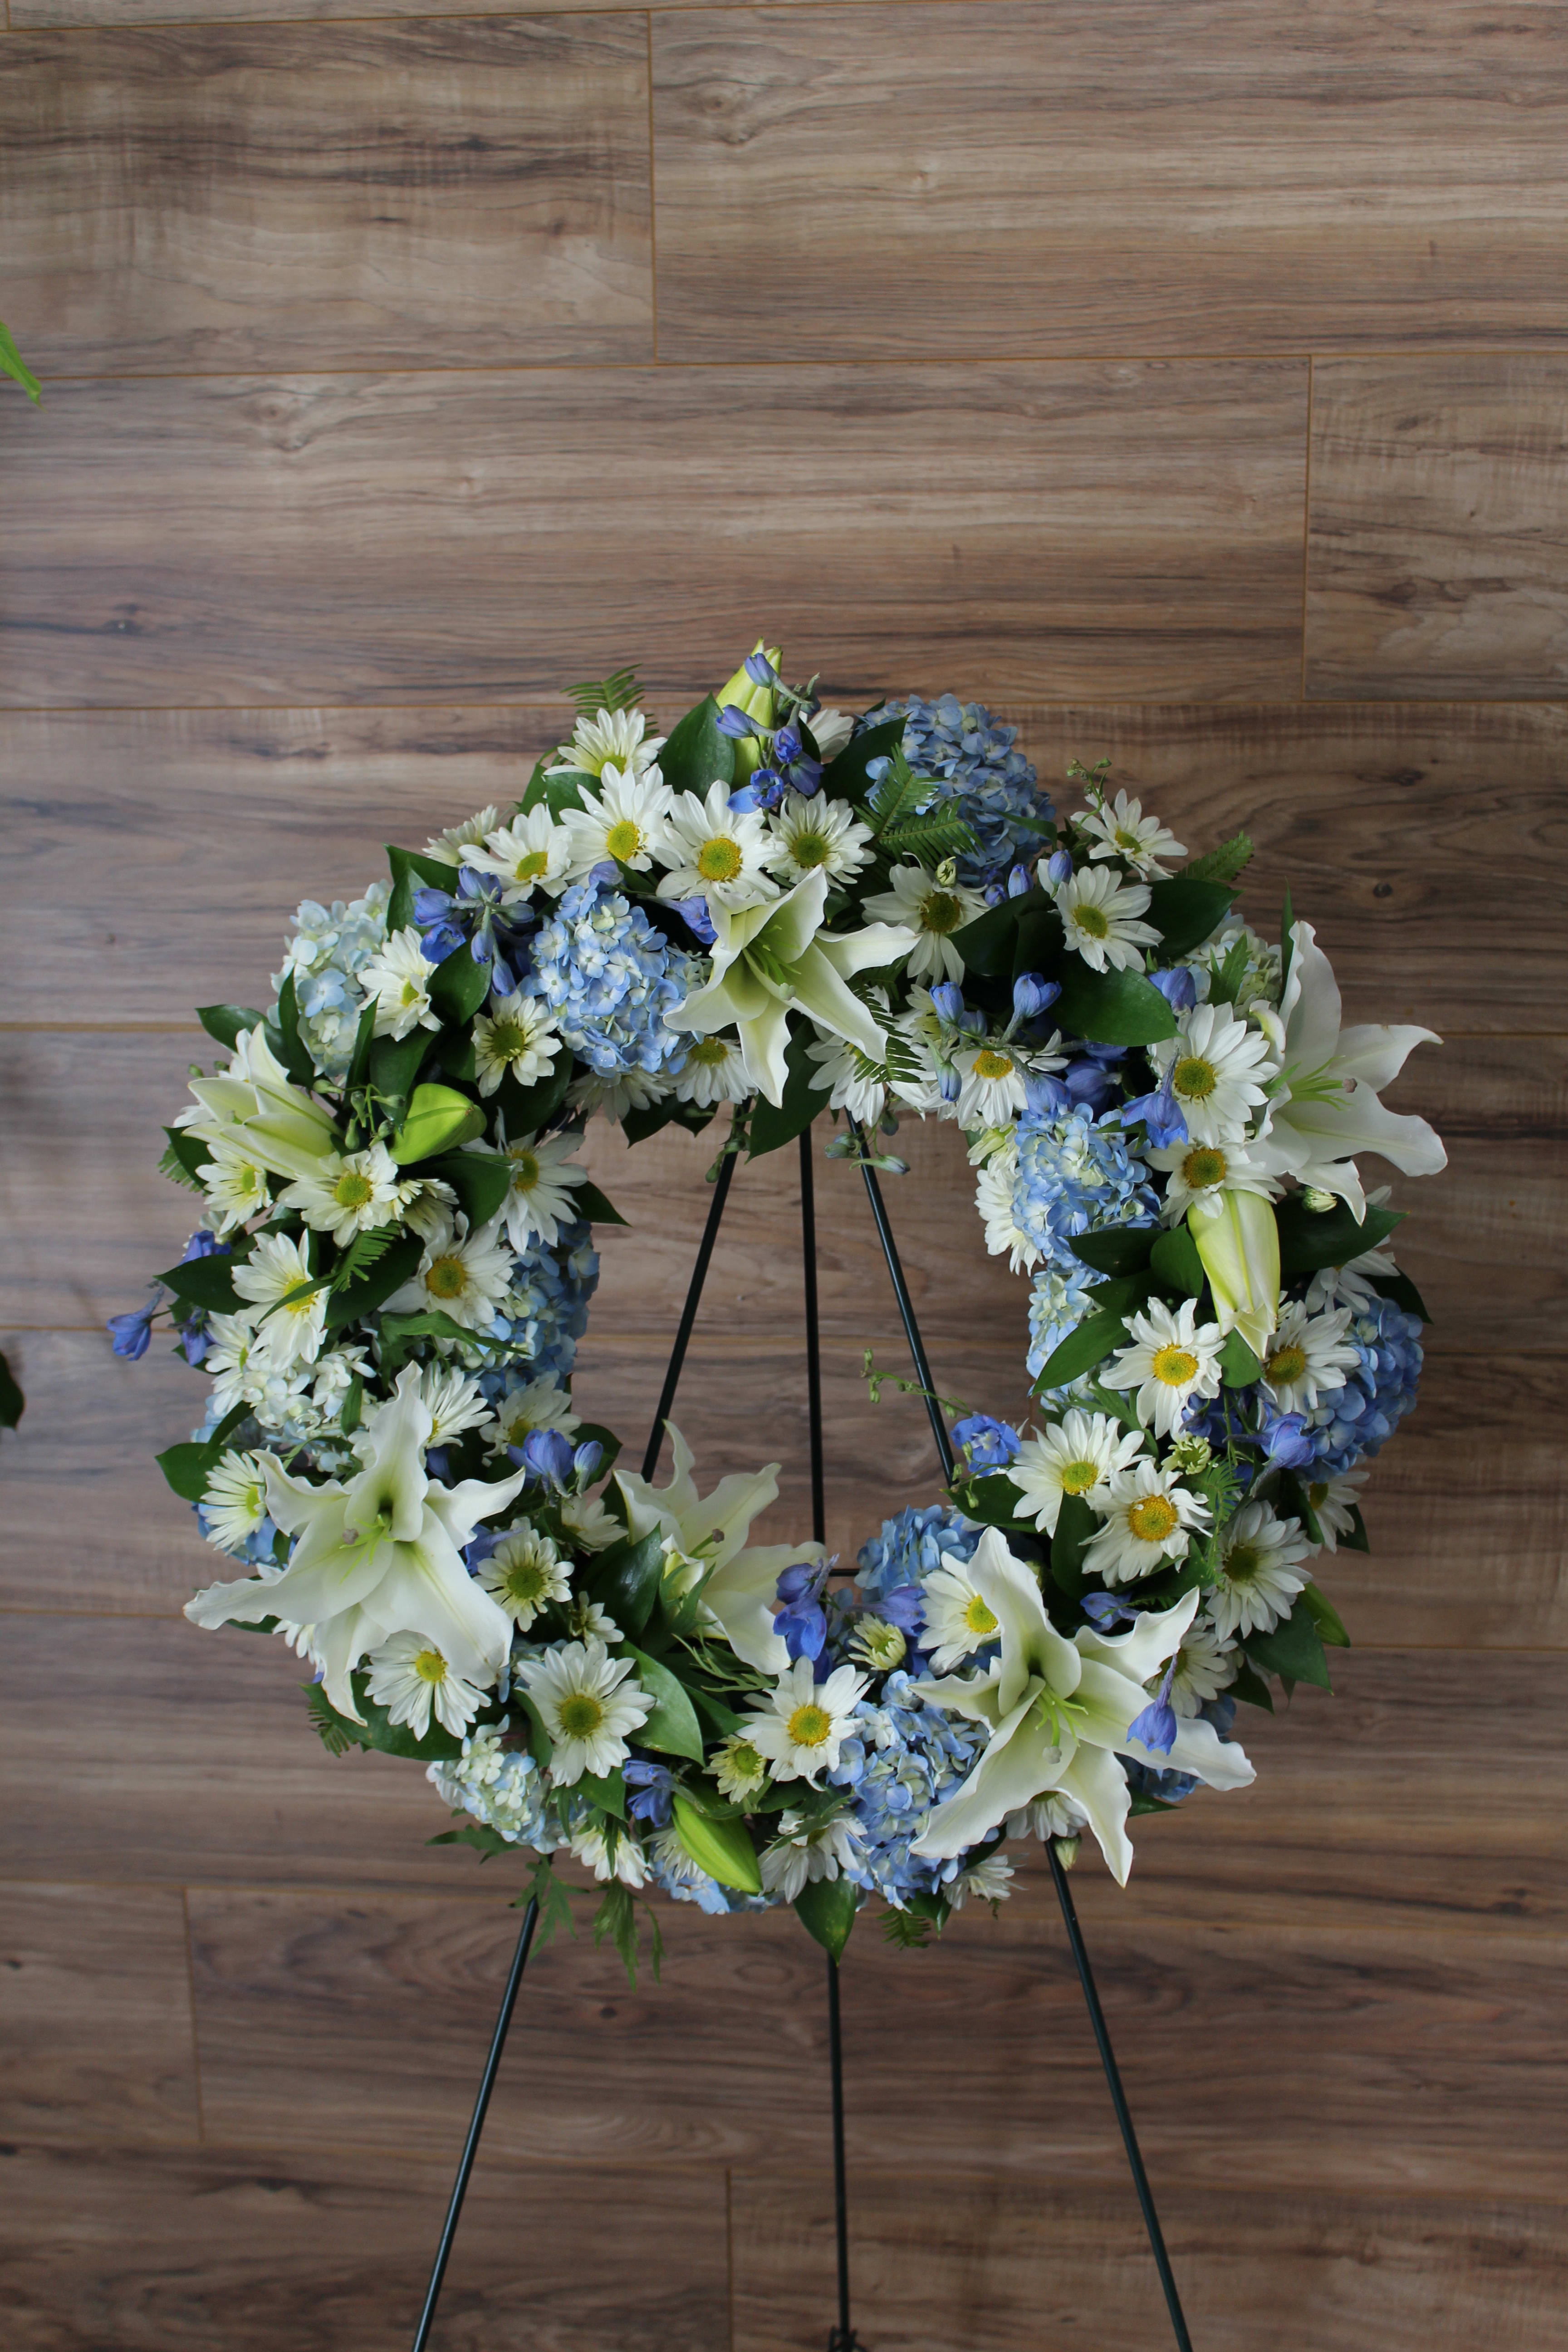 Blue And White Funeral Wreath By Genesee Florist And Events